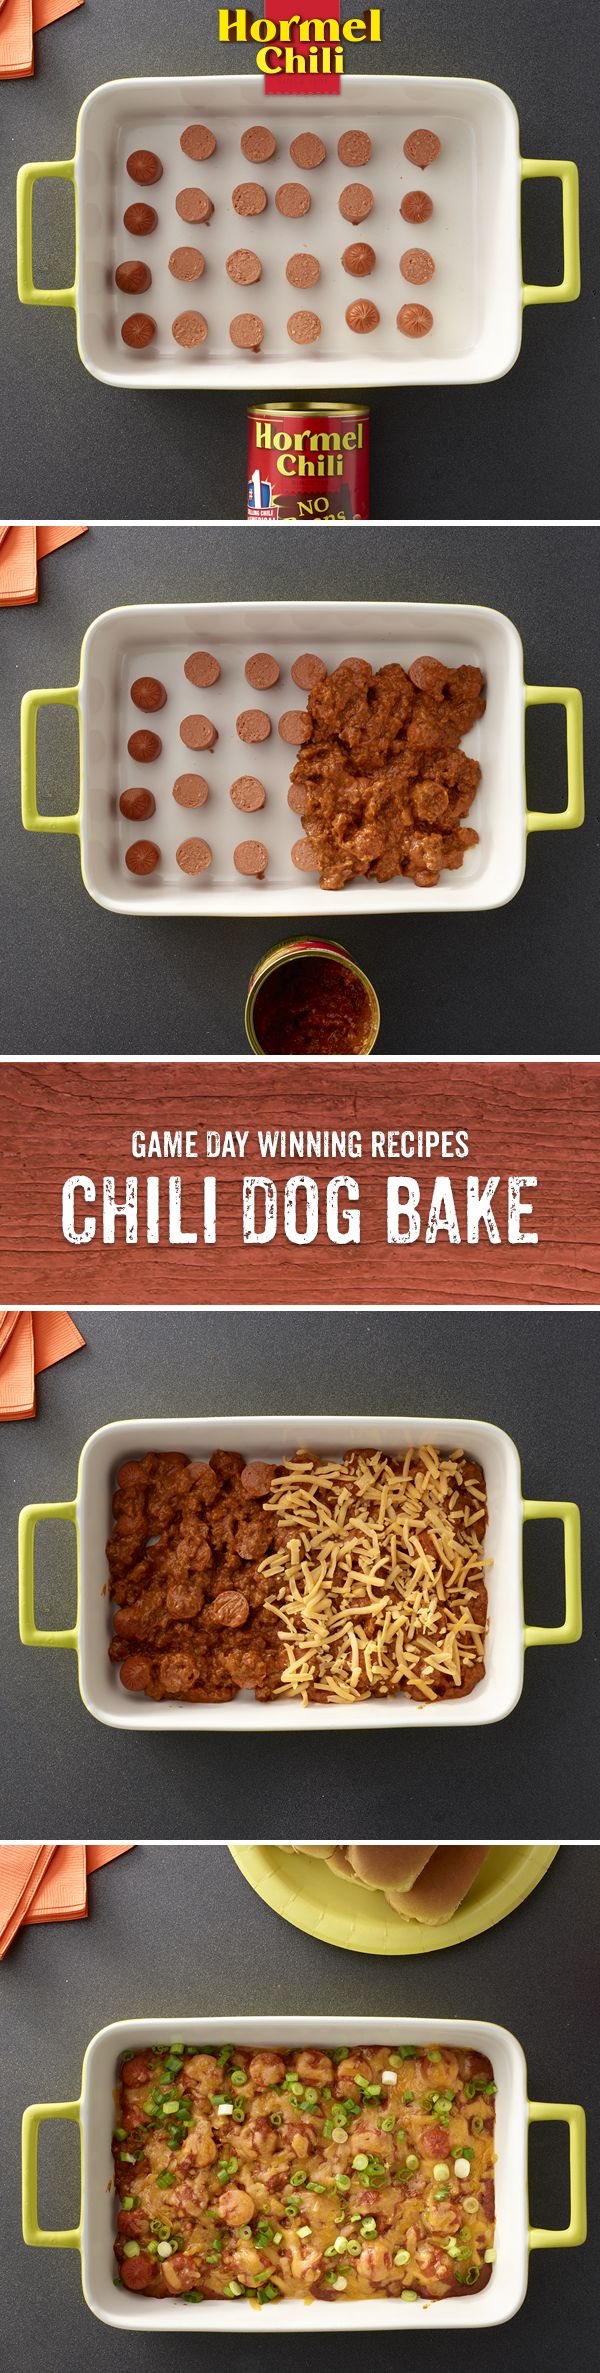 Chili Nation is going to the dogs. Chili dogs, that is — topped with HORMEL® Chili.